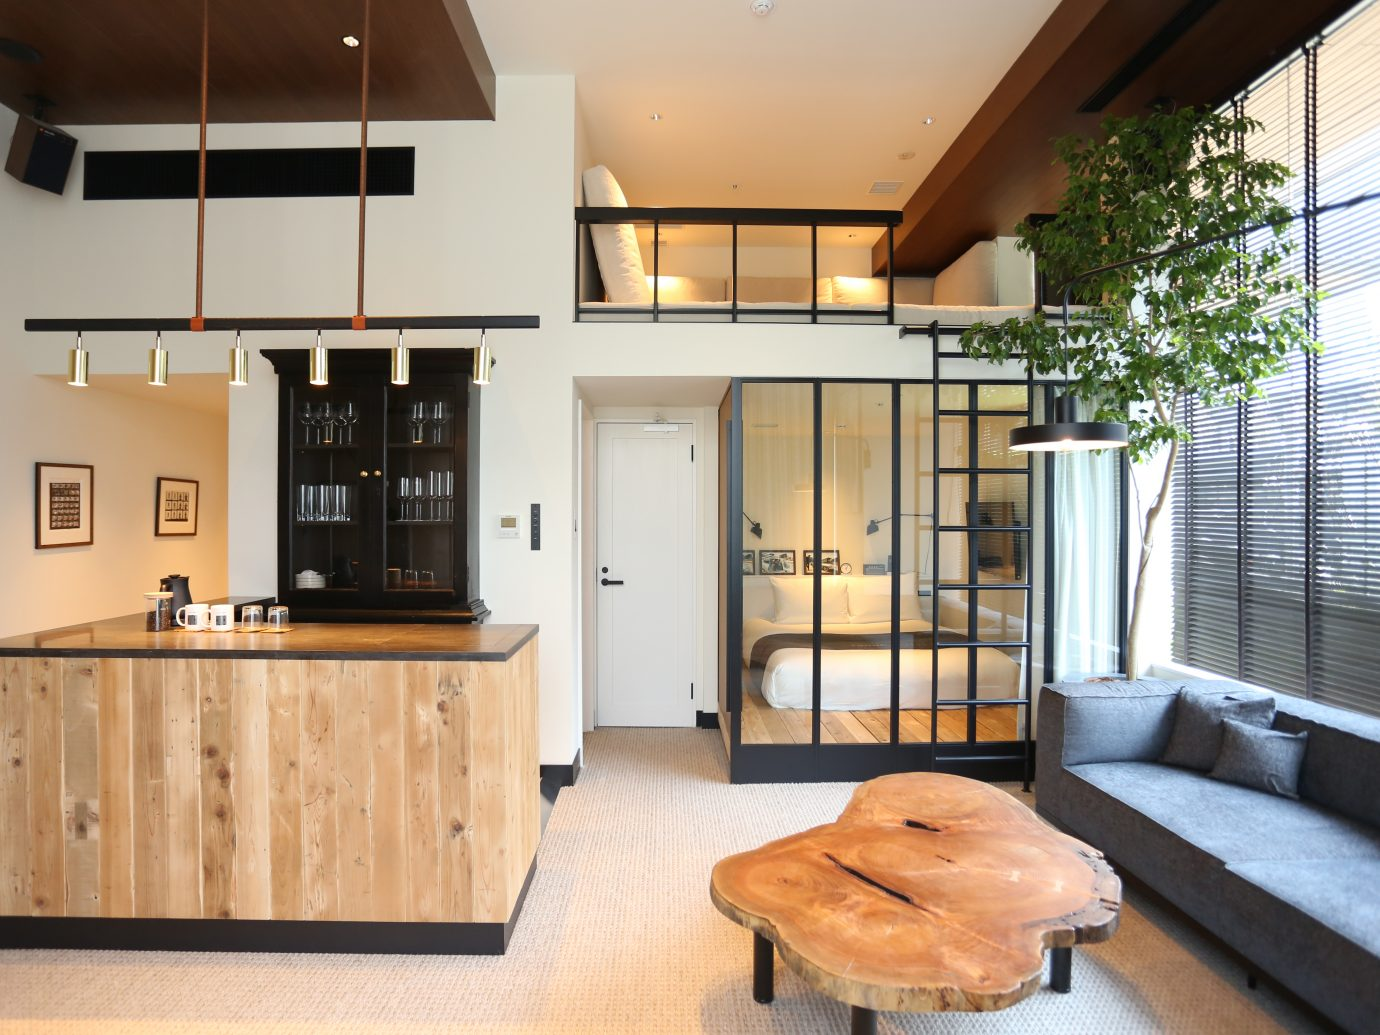 Humble and modern room design at Trunk Hotel in Shibuya